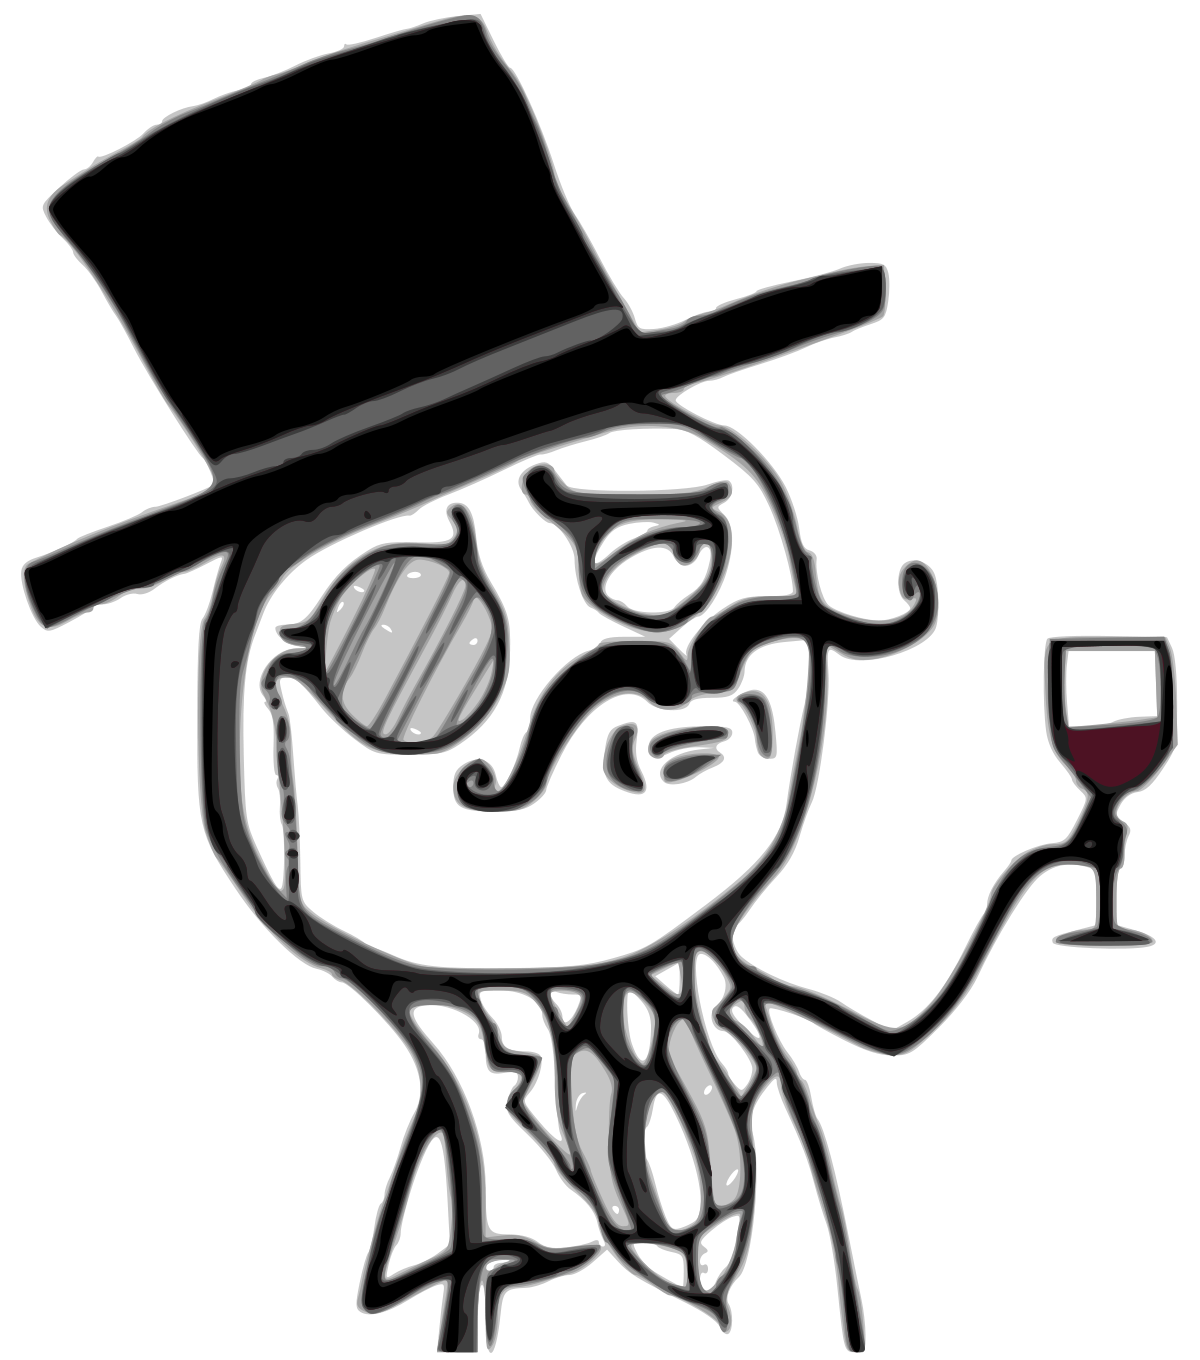 Lulzsec wikipedia . Newspaper clipart hat